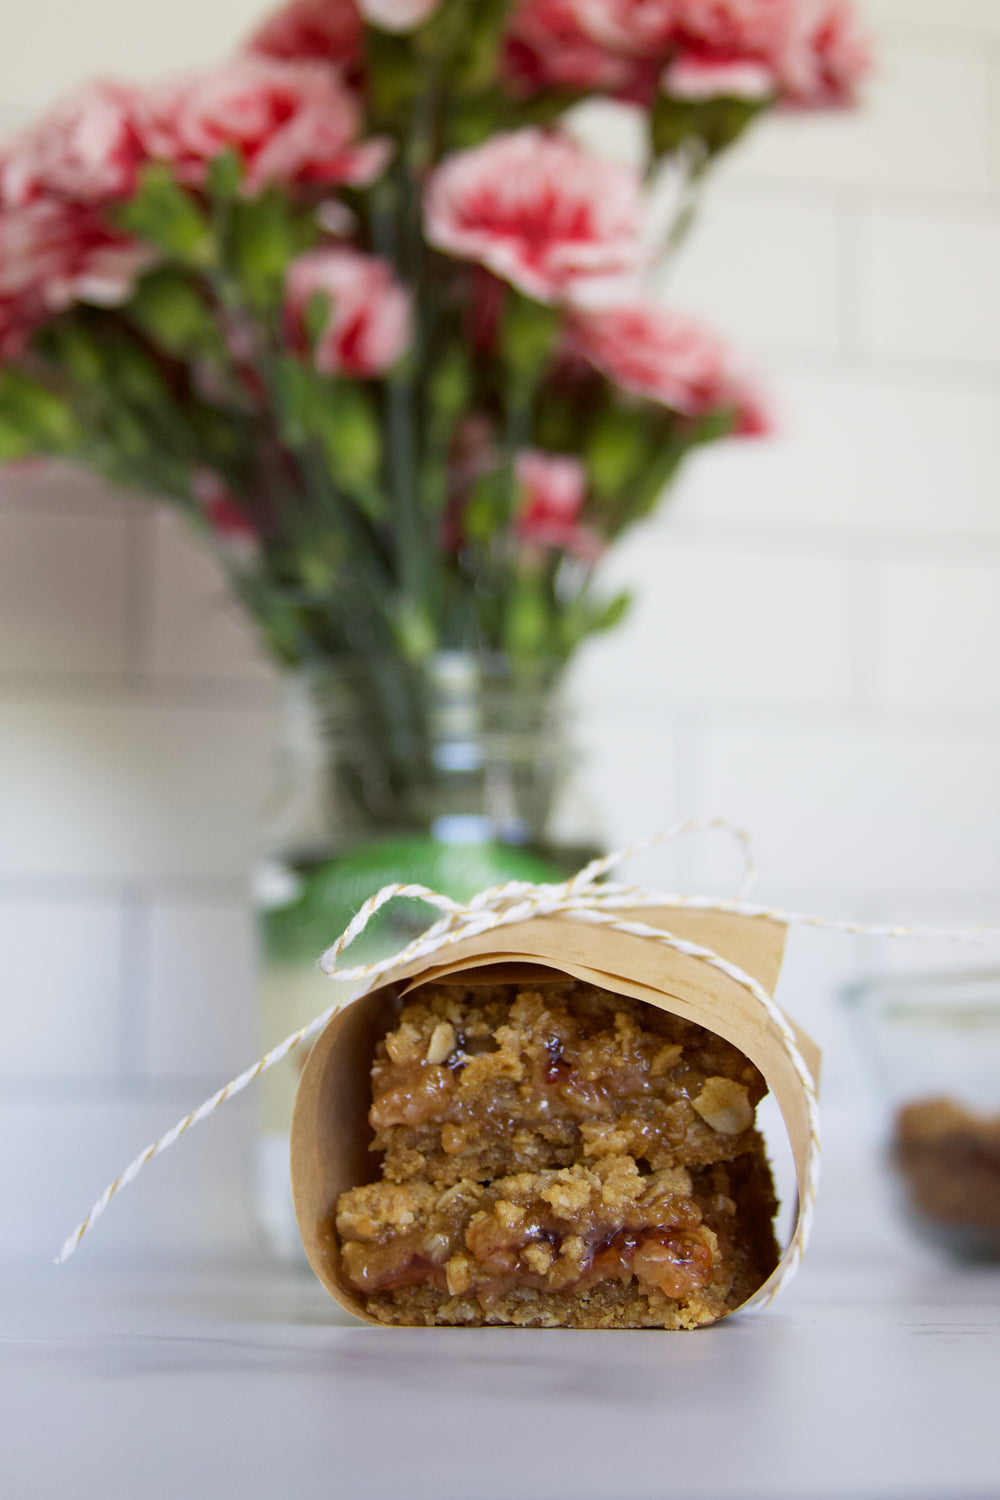 Peanut butter and jelly bars wrapped in paper with pink carnations in a Raven's Nest jar